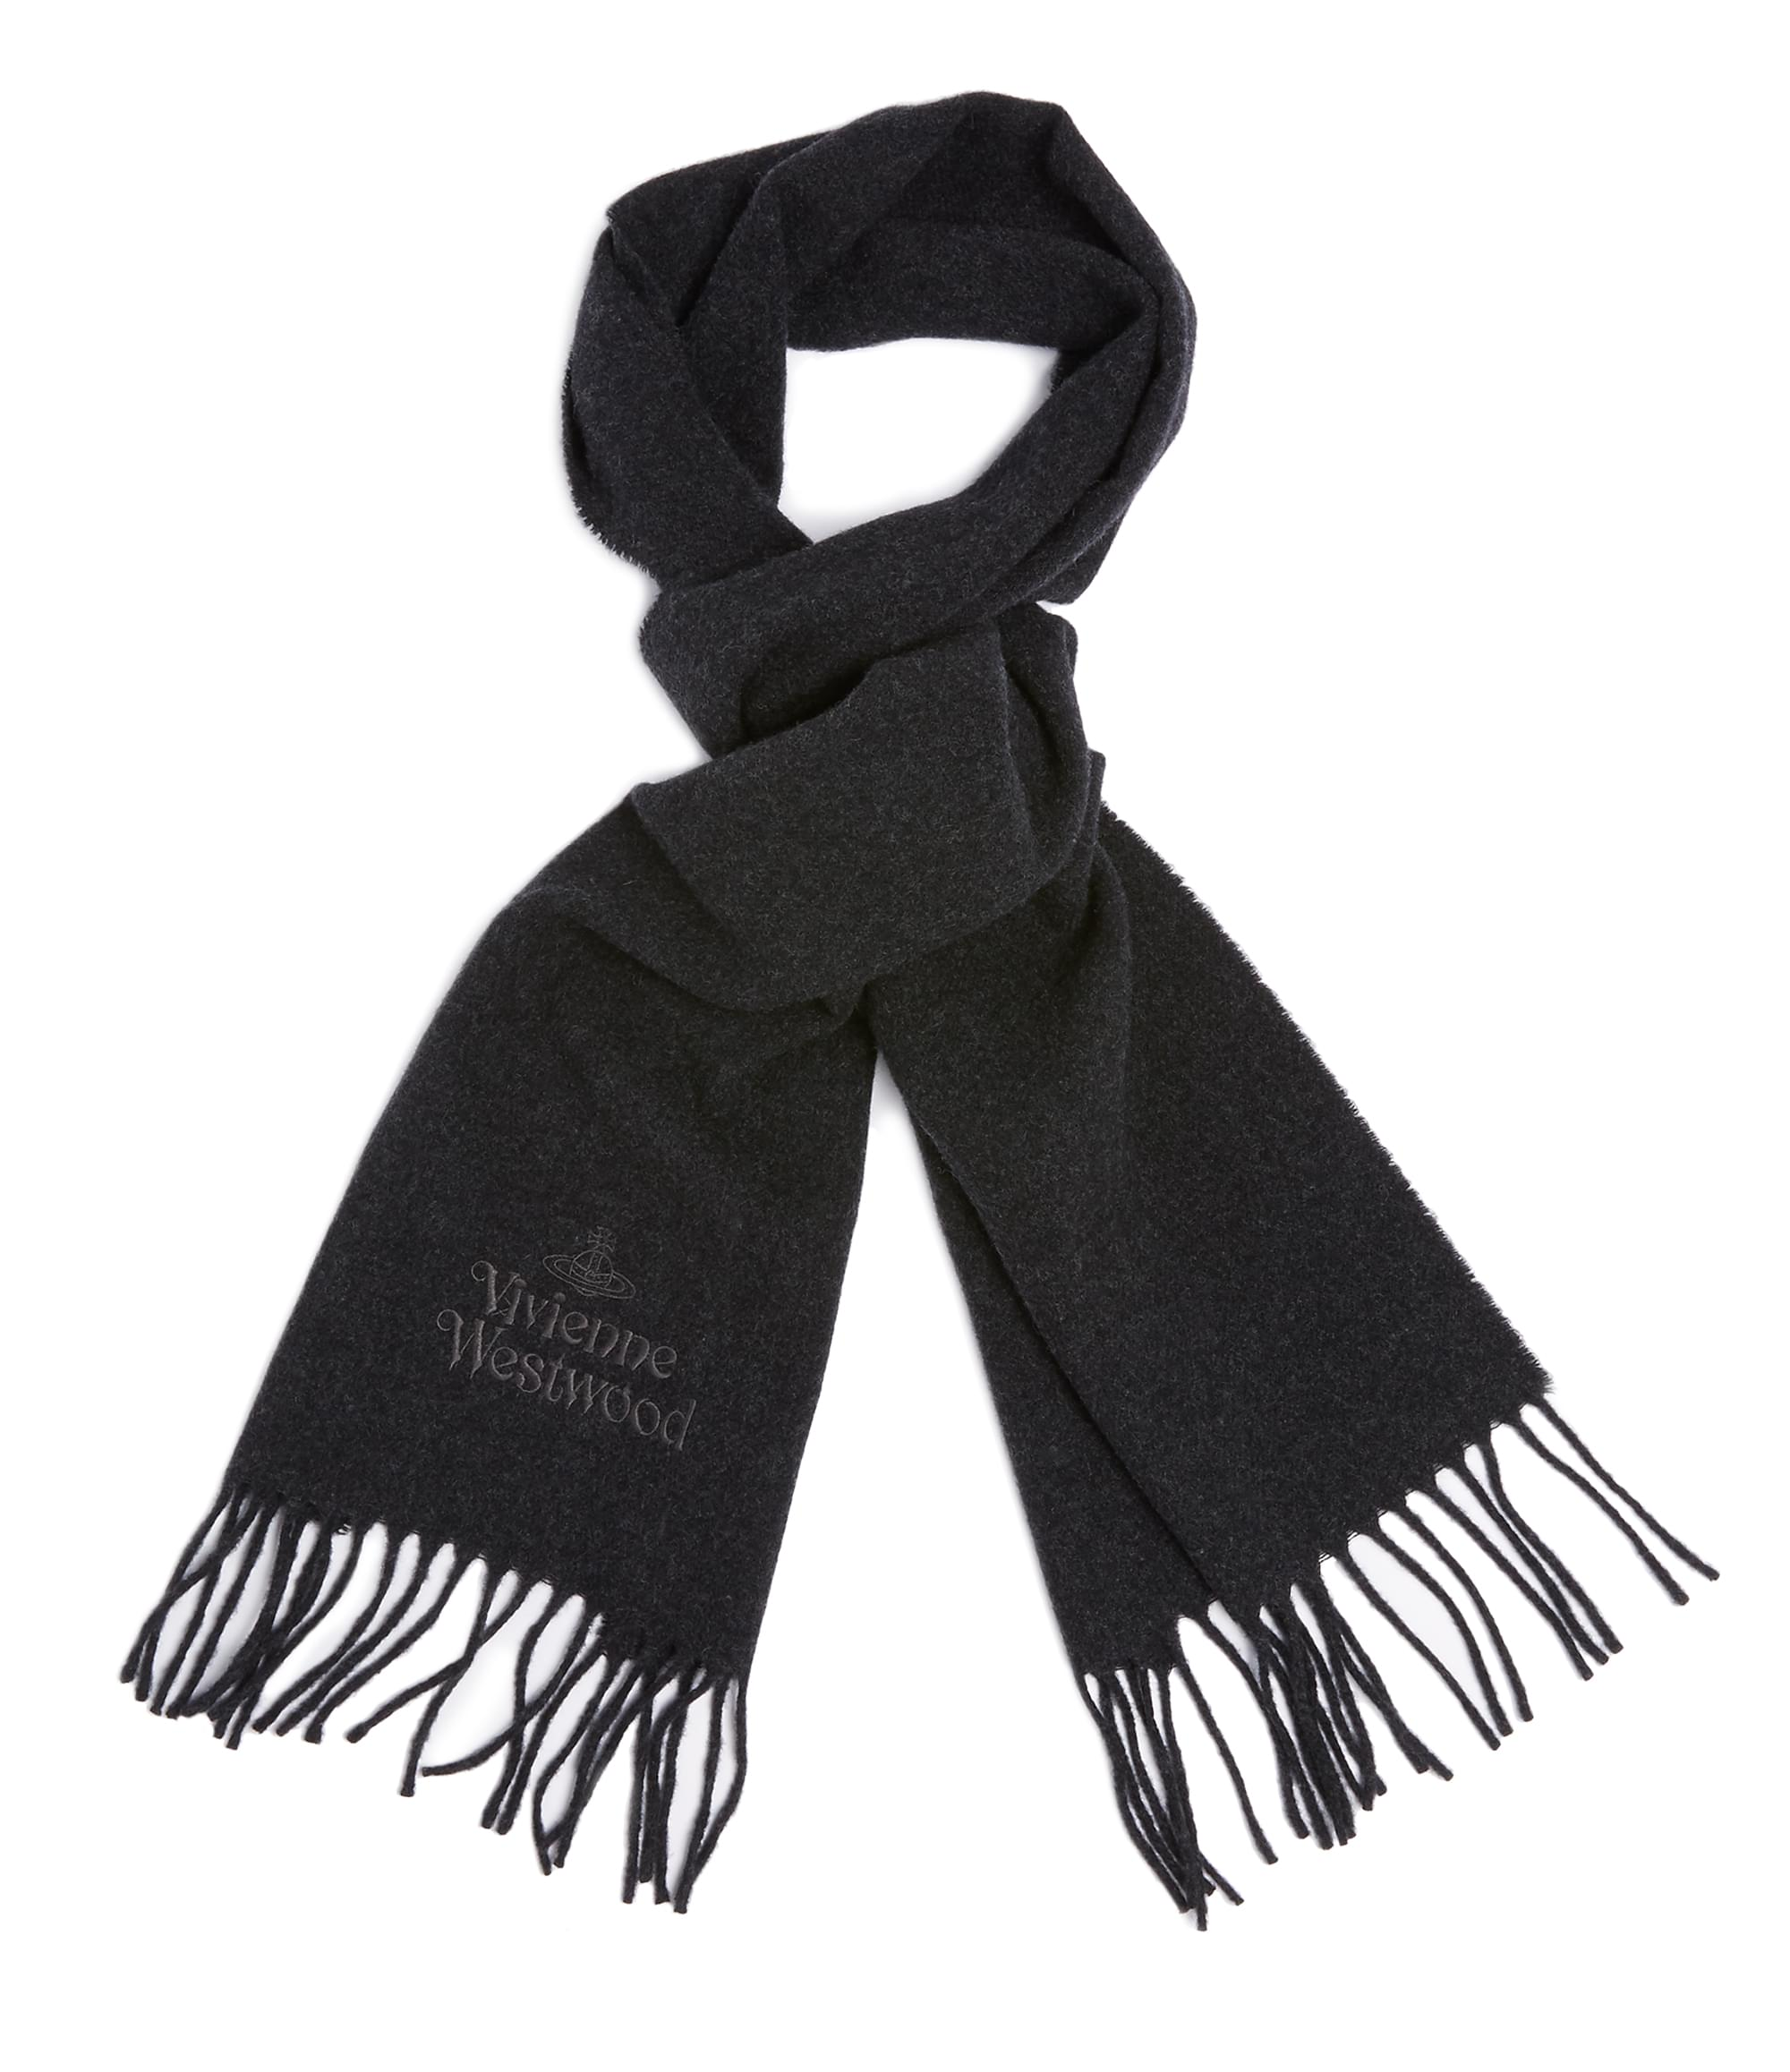 Vivienne Westwood Anthracite Classic Scarf